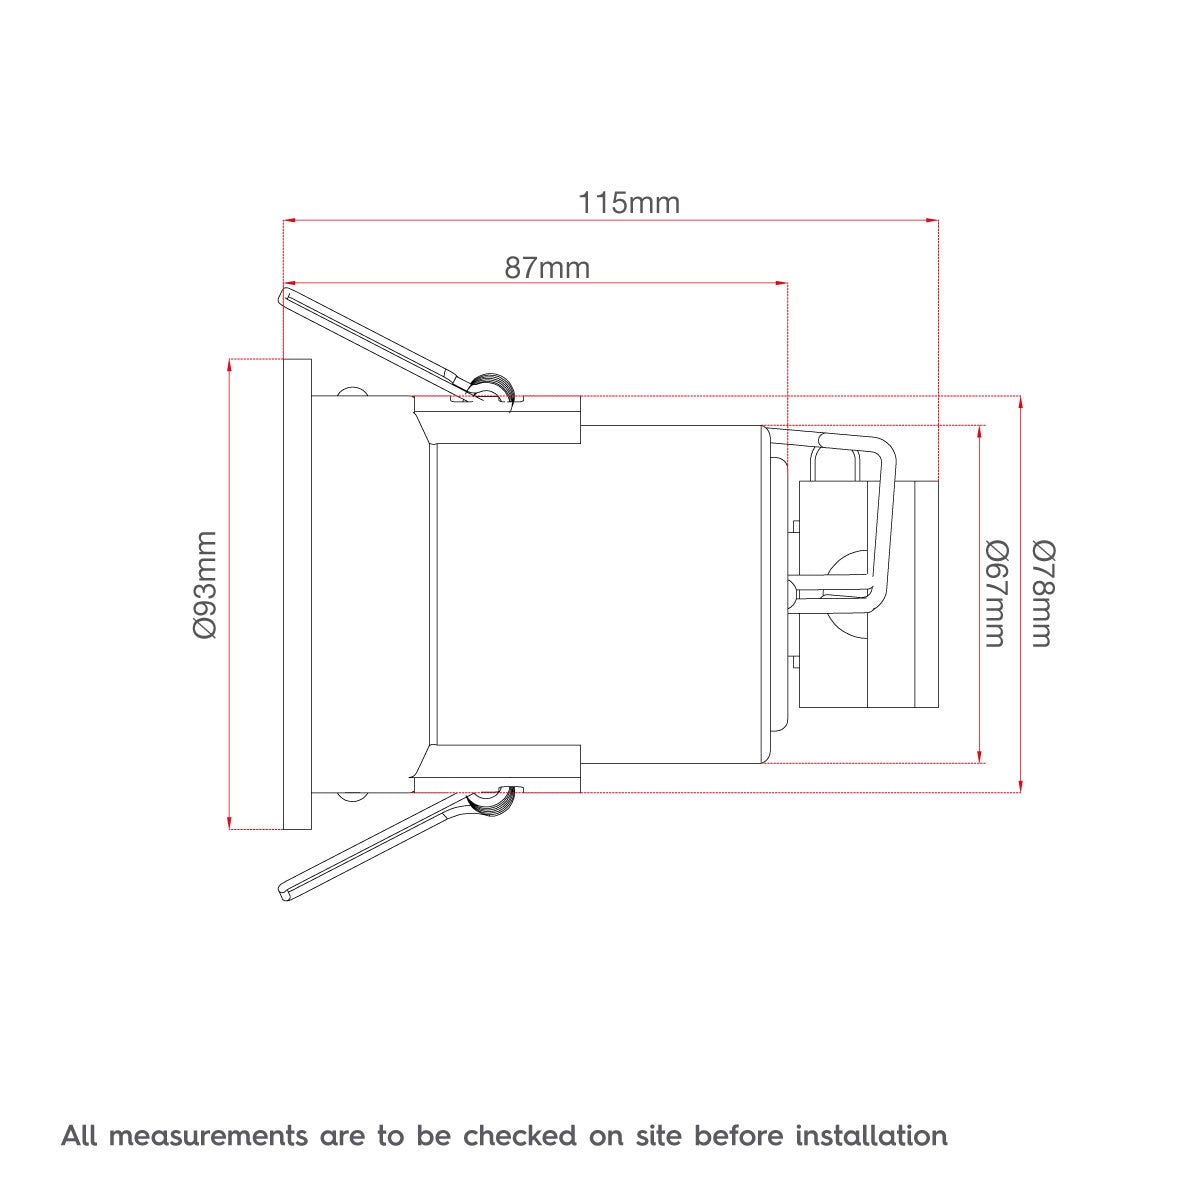 Dimensions for Forum adjustable fire rated bathroom downlight in white